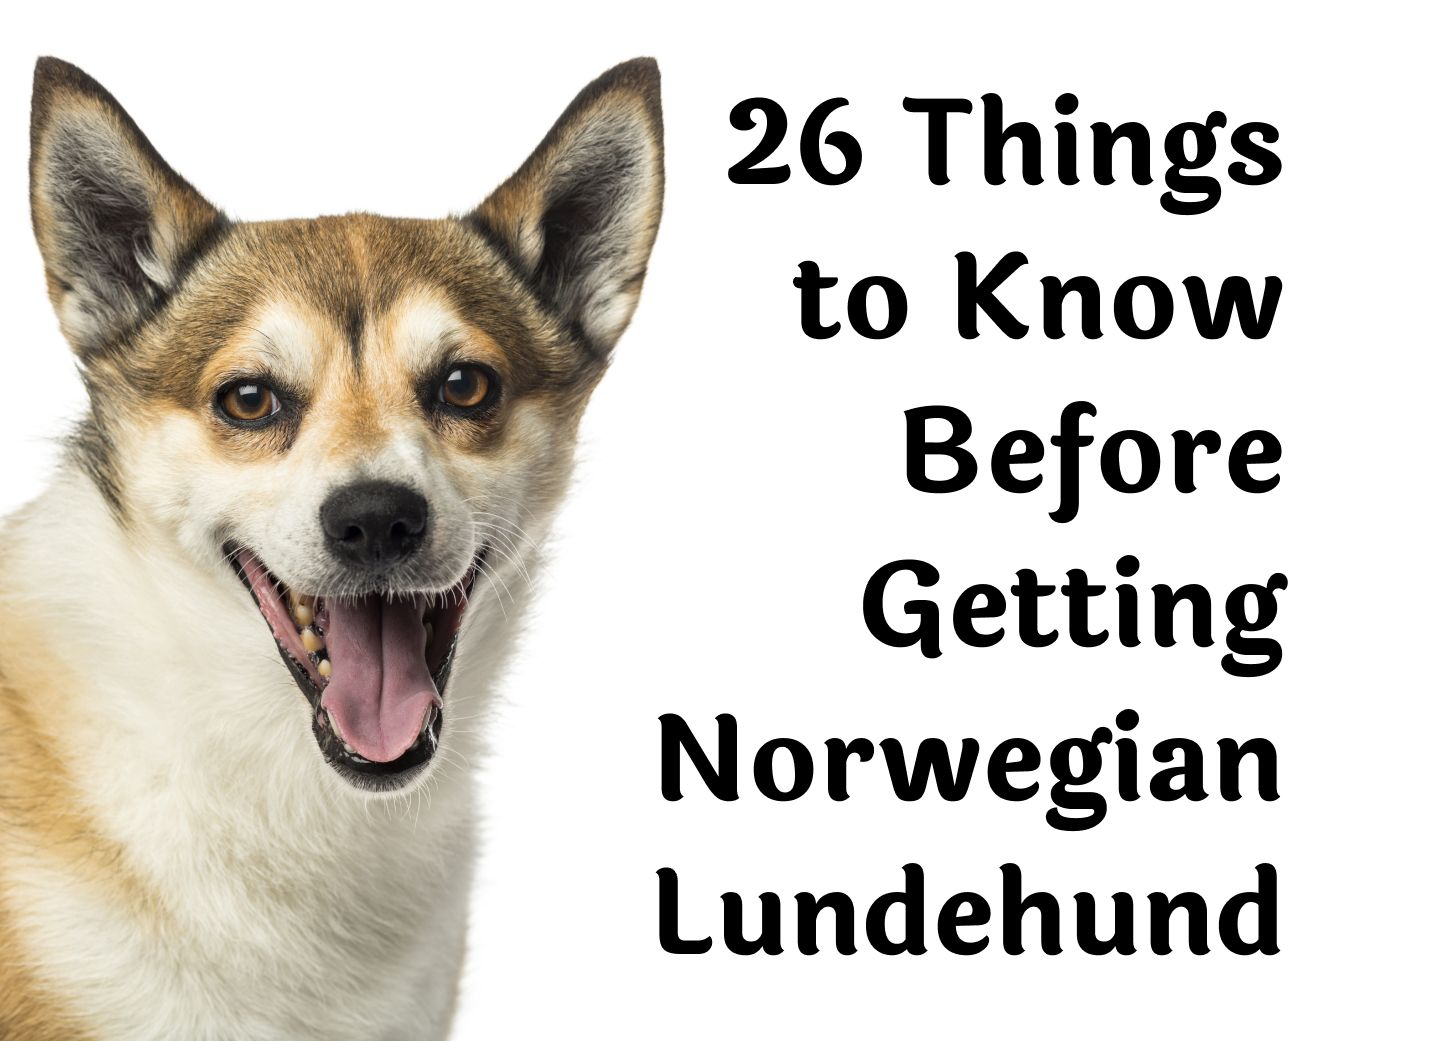 26 Questions That Should Be Considered Before Getting A Norwegian Lundehund